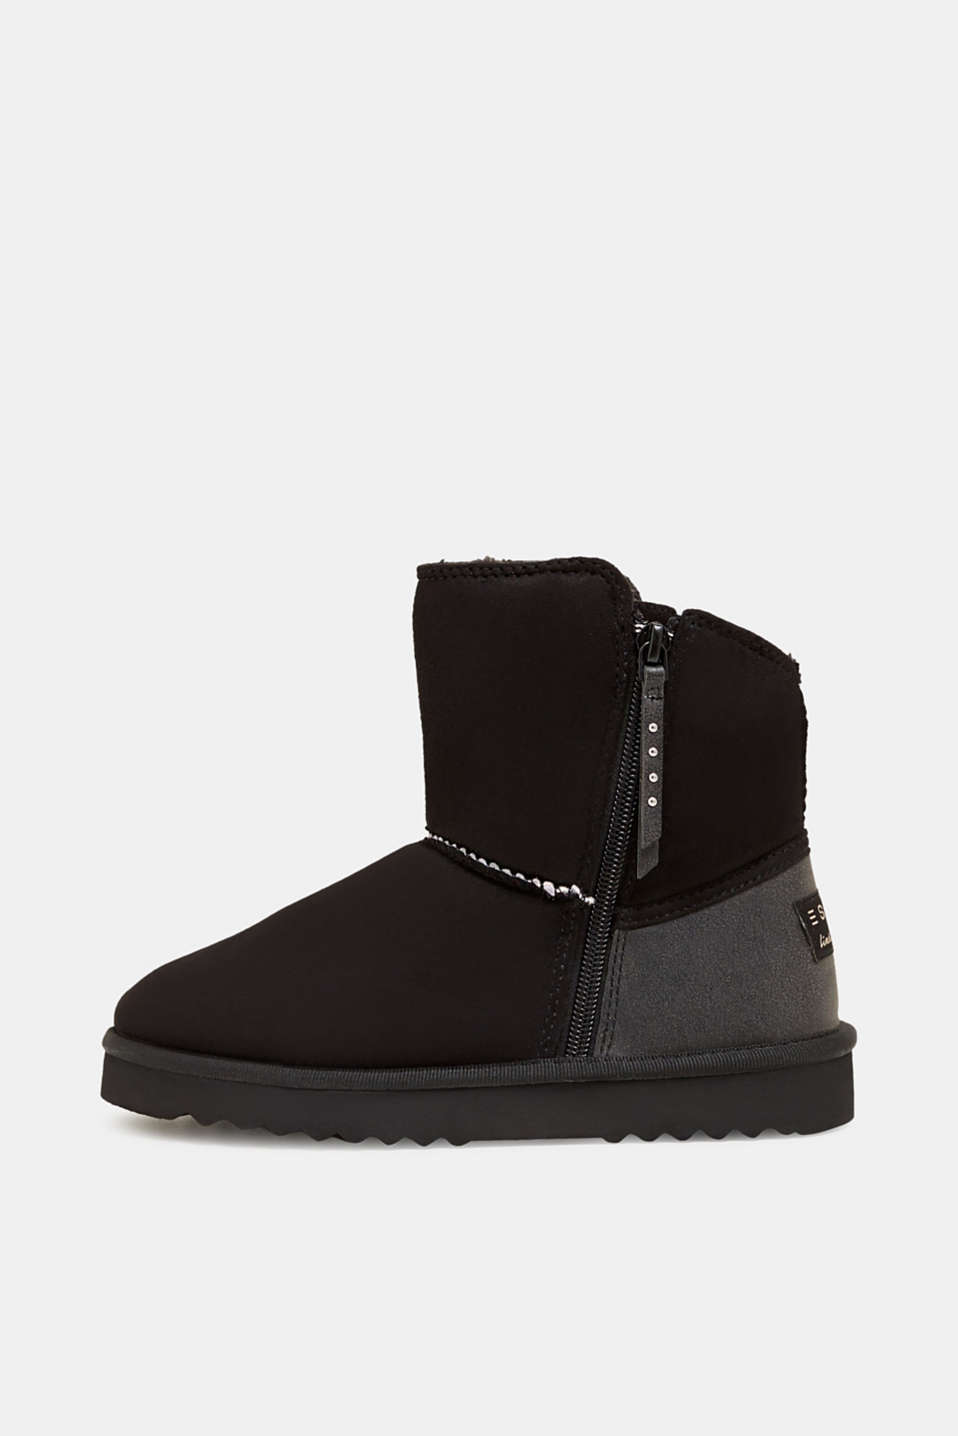 Esprit - Winter boots with faux fur lining